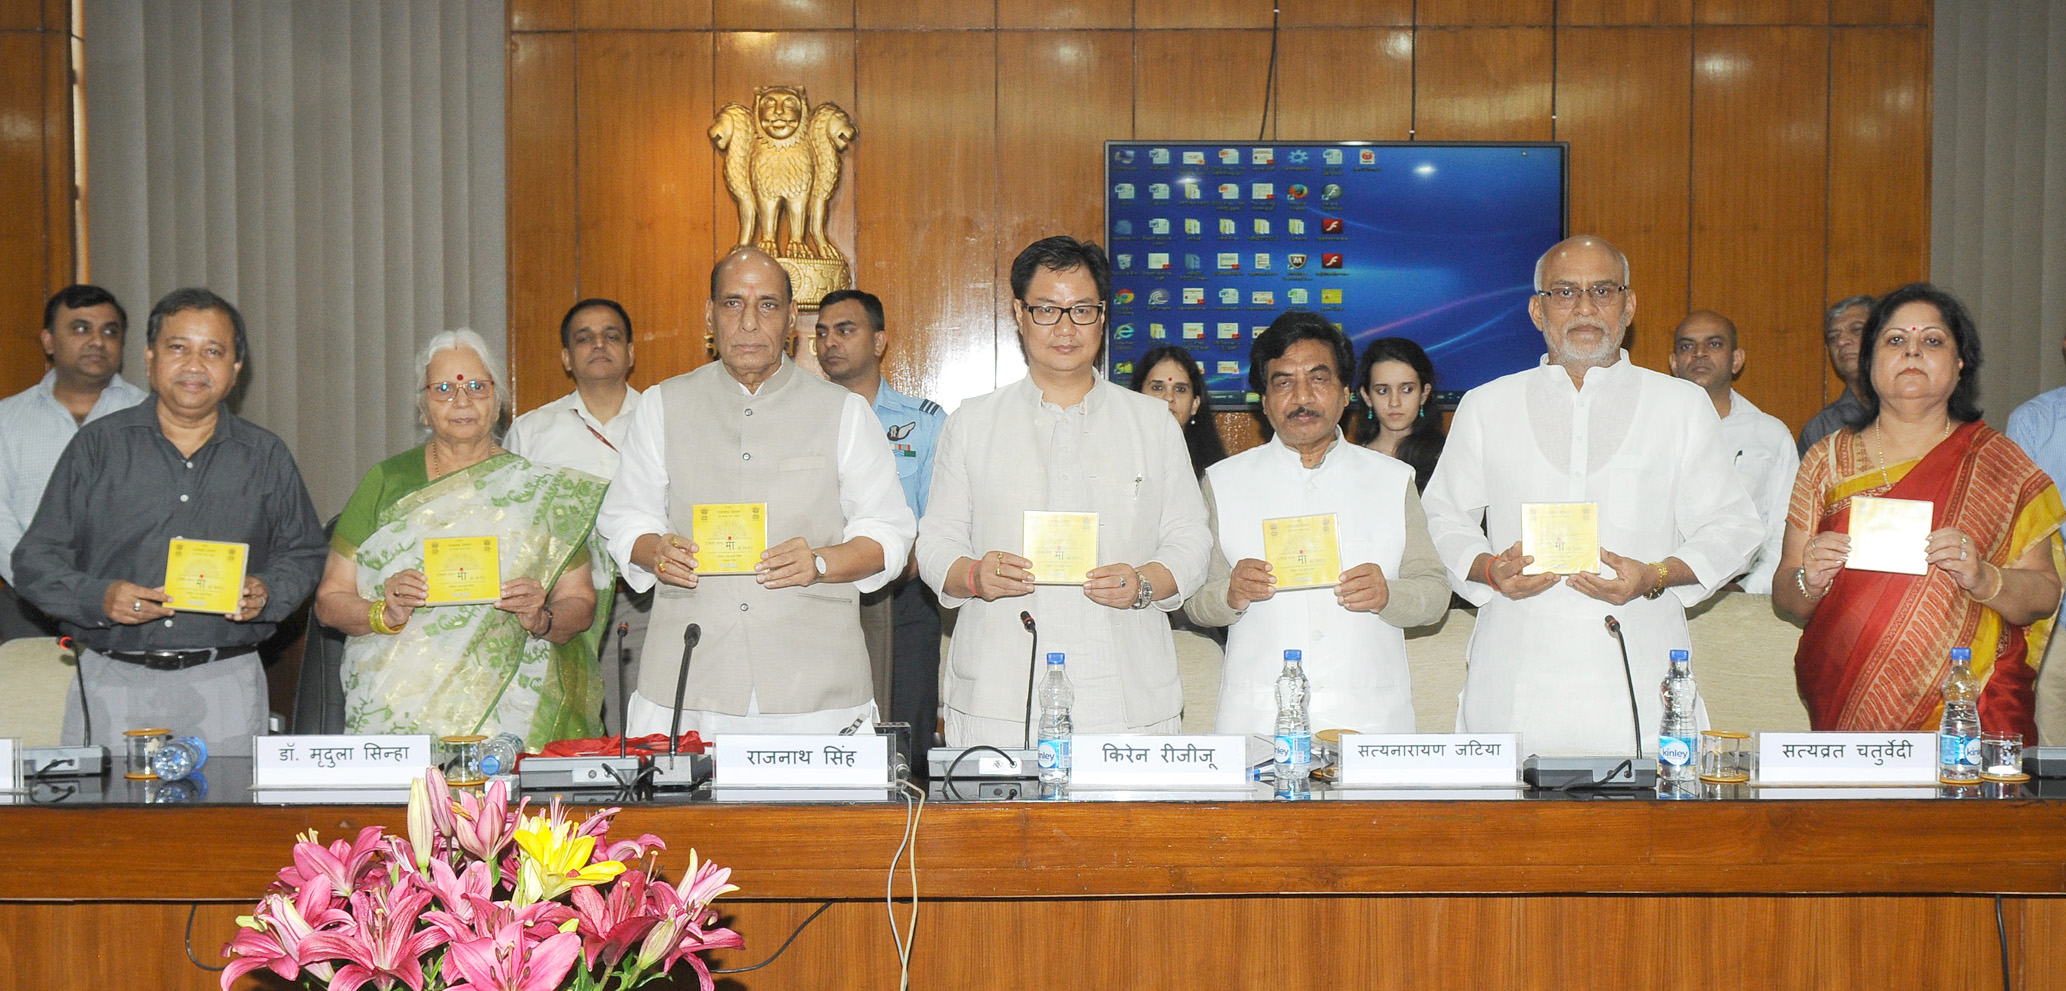 """The Union Home Minister, Shri Rajnath Singh launching a CD of Songs titled """"Hindi Bharat Maa ki Bindi"""" written by the Governor of Goa, Smt. Mridula Sinha, at a function, in New Delhi on August 28, 2015.  The Minister of State for Home Affairs, Shri Kiren Rijiju and other dignitaries are also seen."""